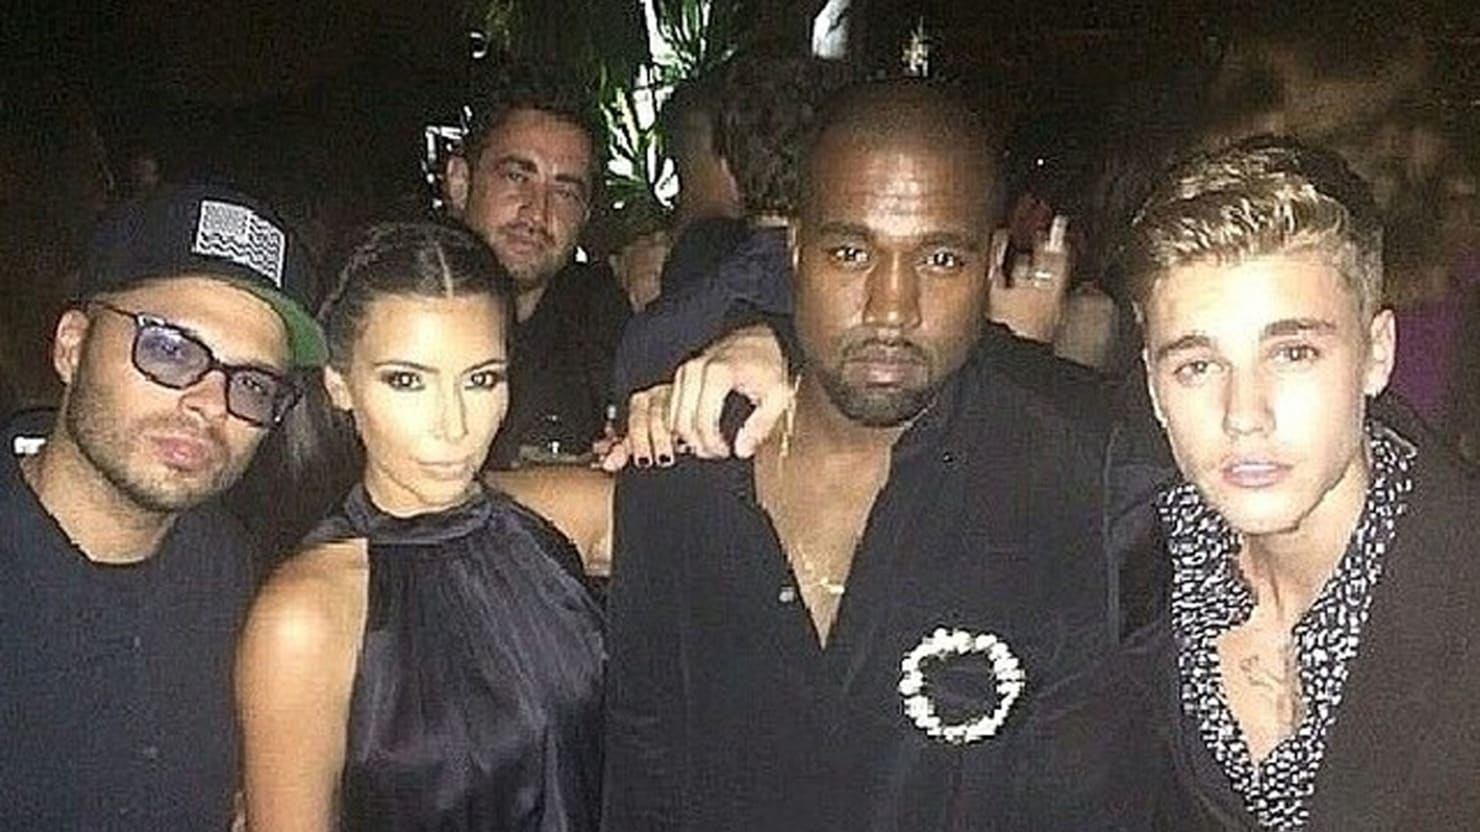 The Tiny Prince of Ibiza Parties On, While Kim and Paris Make Peace